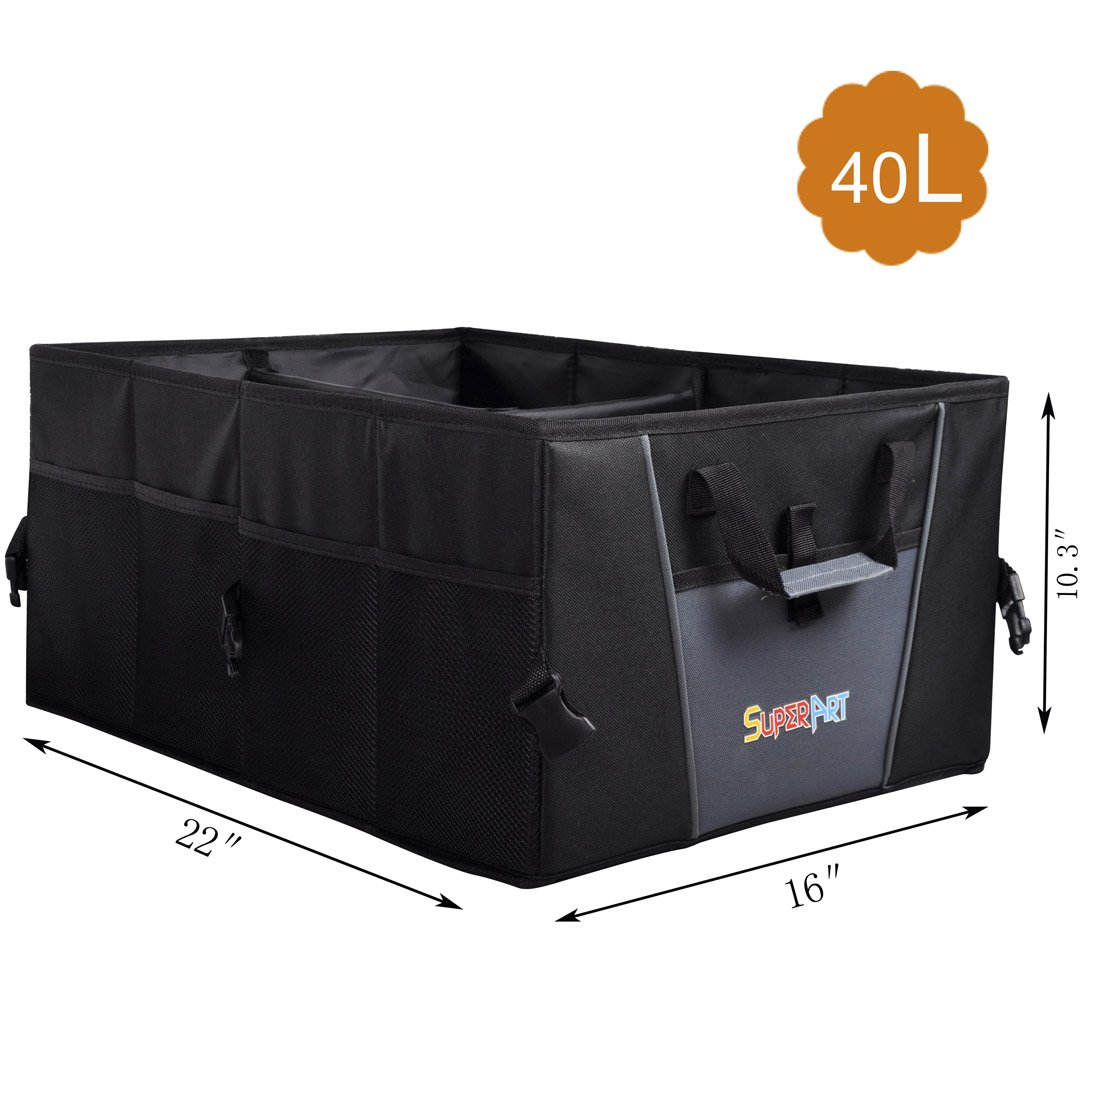 Car Trunk Organizer For SUV Truck Durable Collapsible Cargo Storage Non-Slip Fit any Vehicle